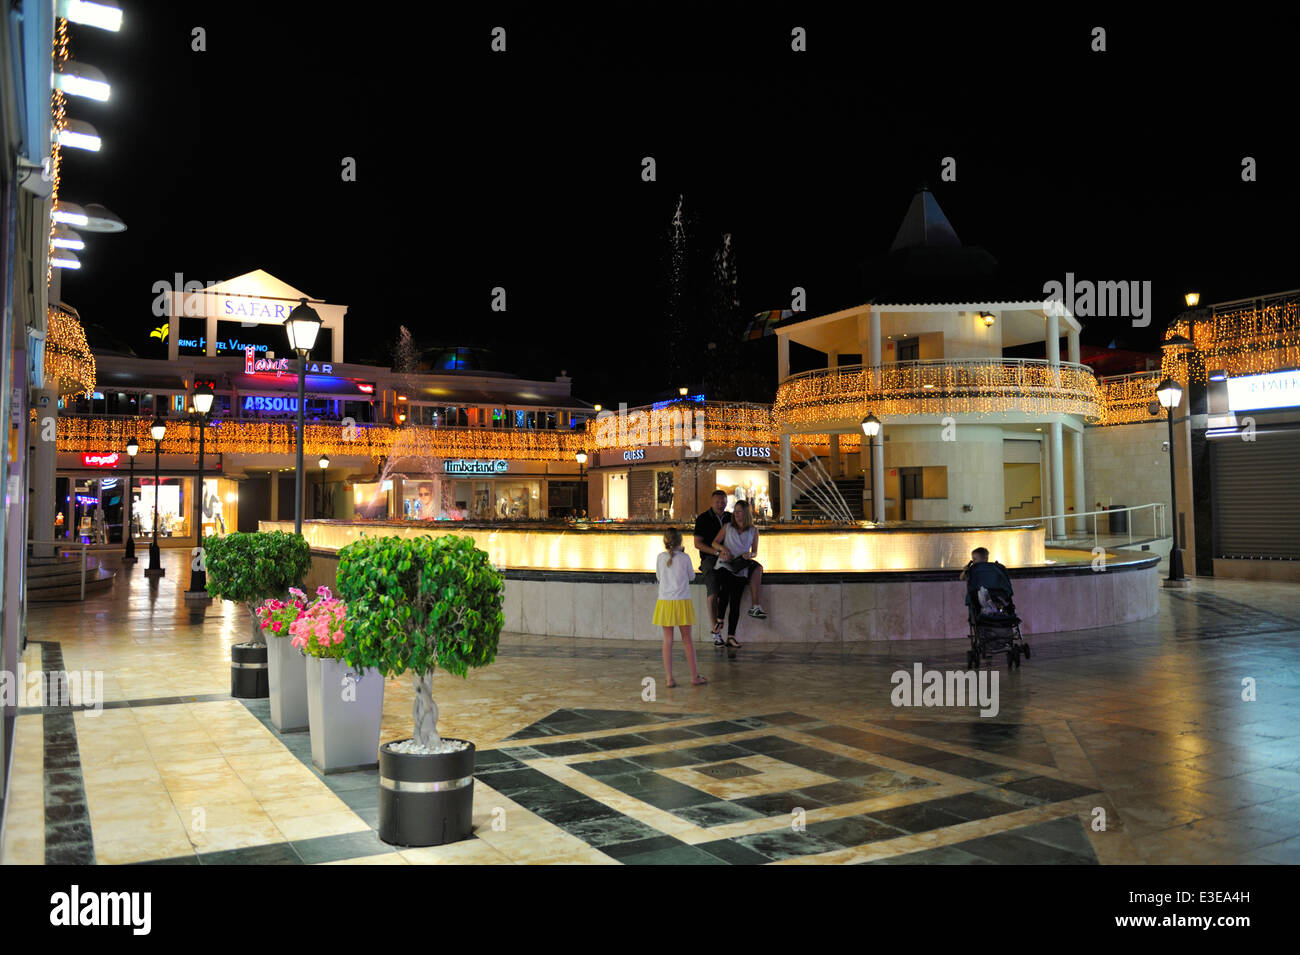 Centro Comercial Del Mueble Tenerife Arona Tenerife Stock Photos And Arona Tenerife Stock Images